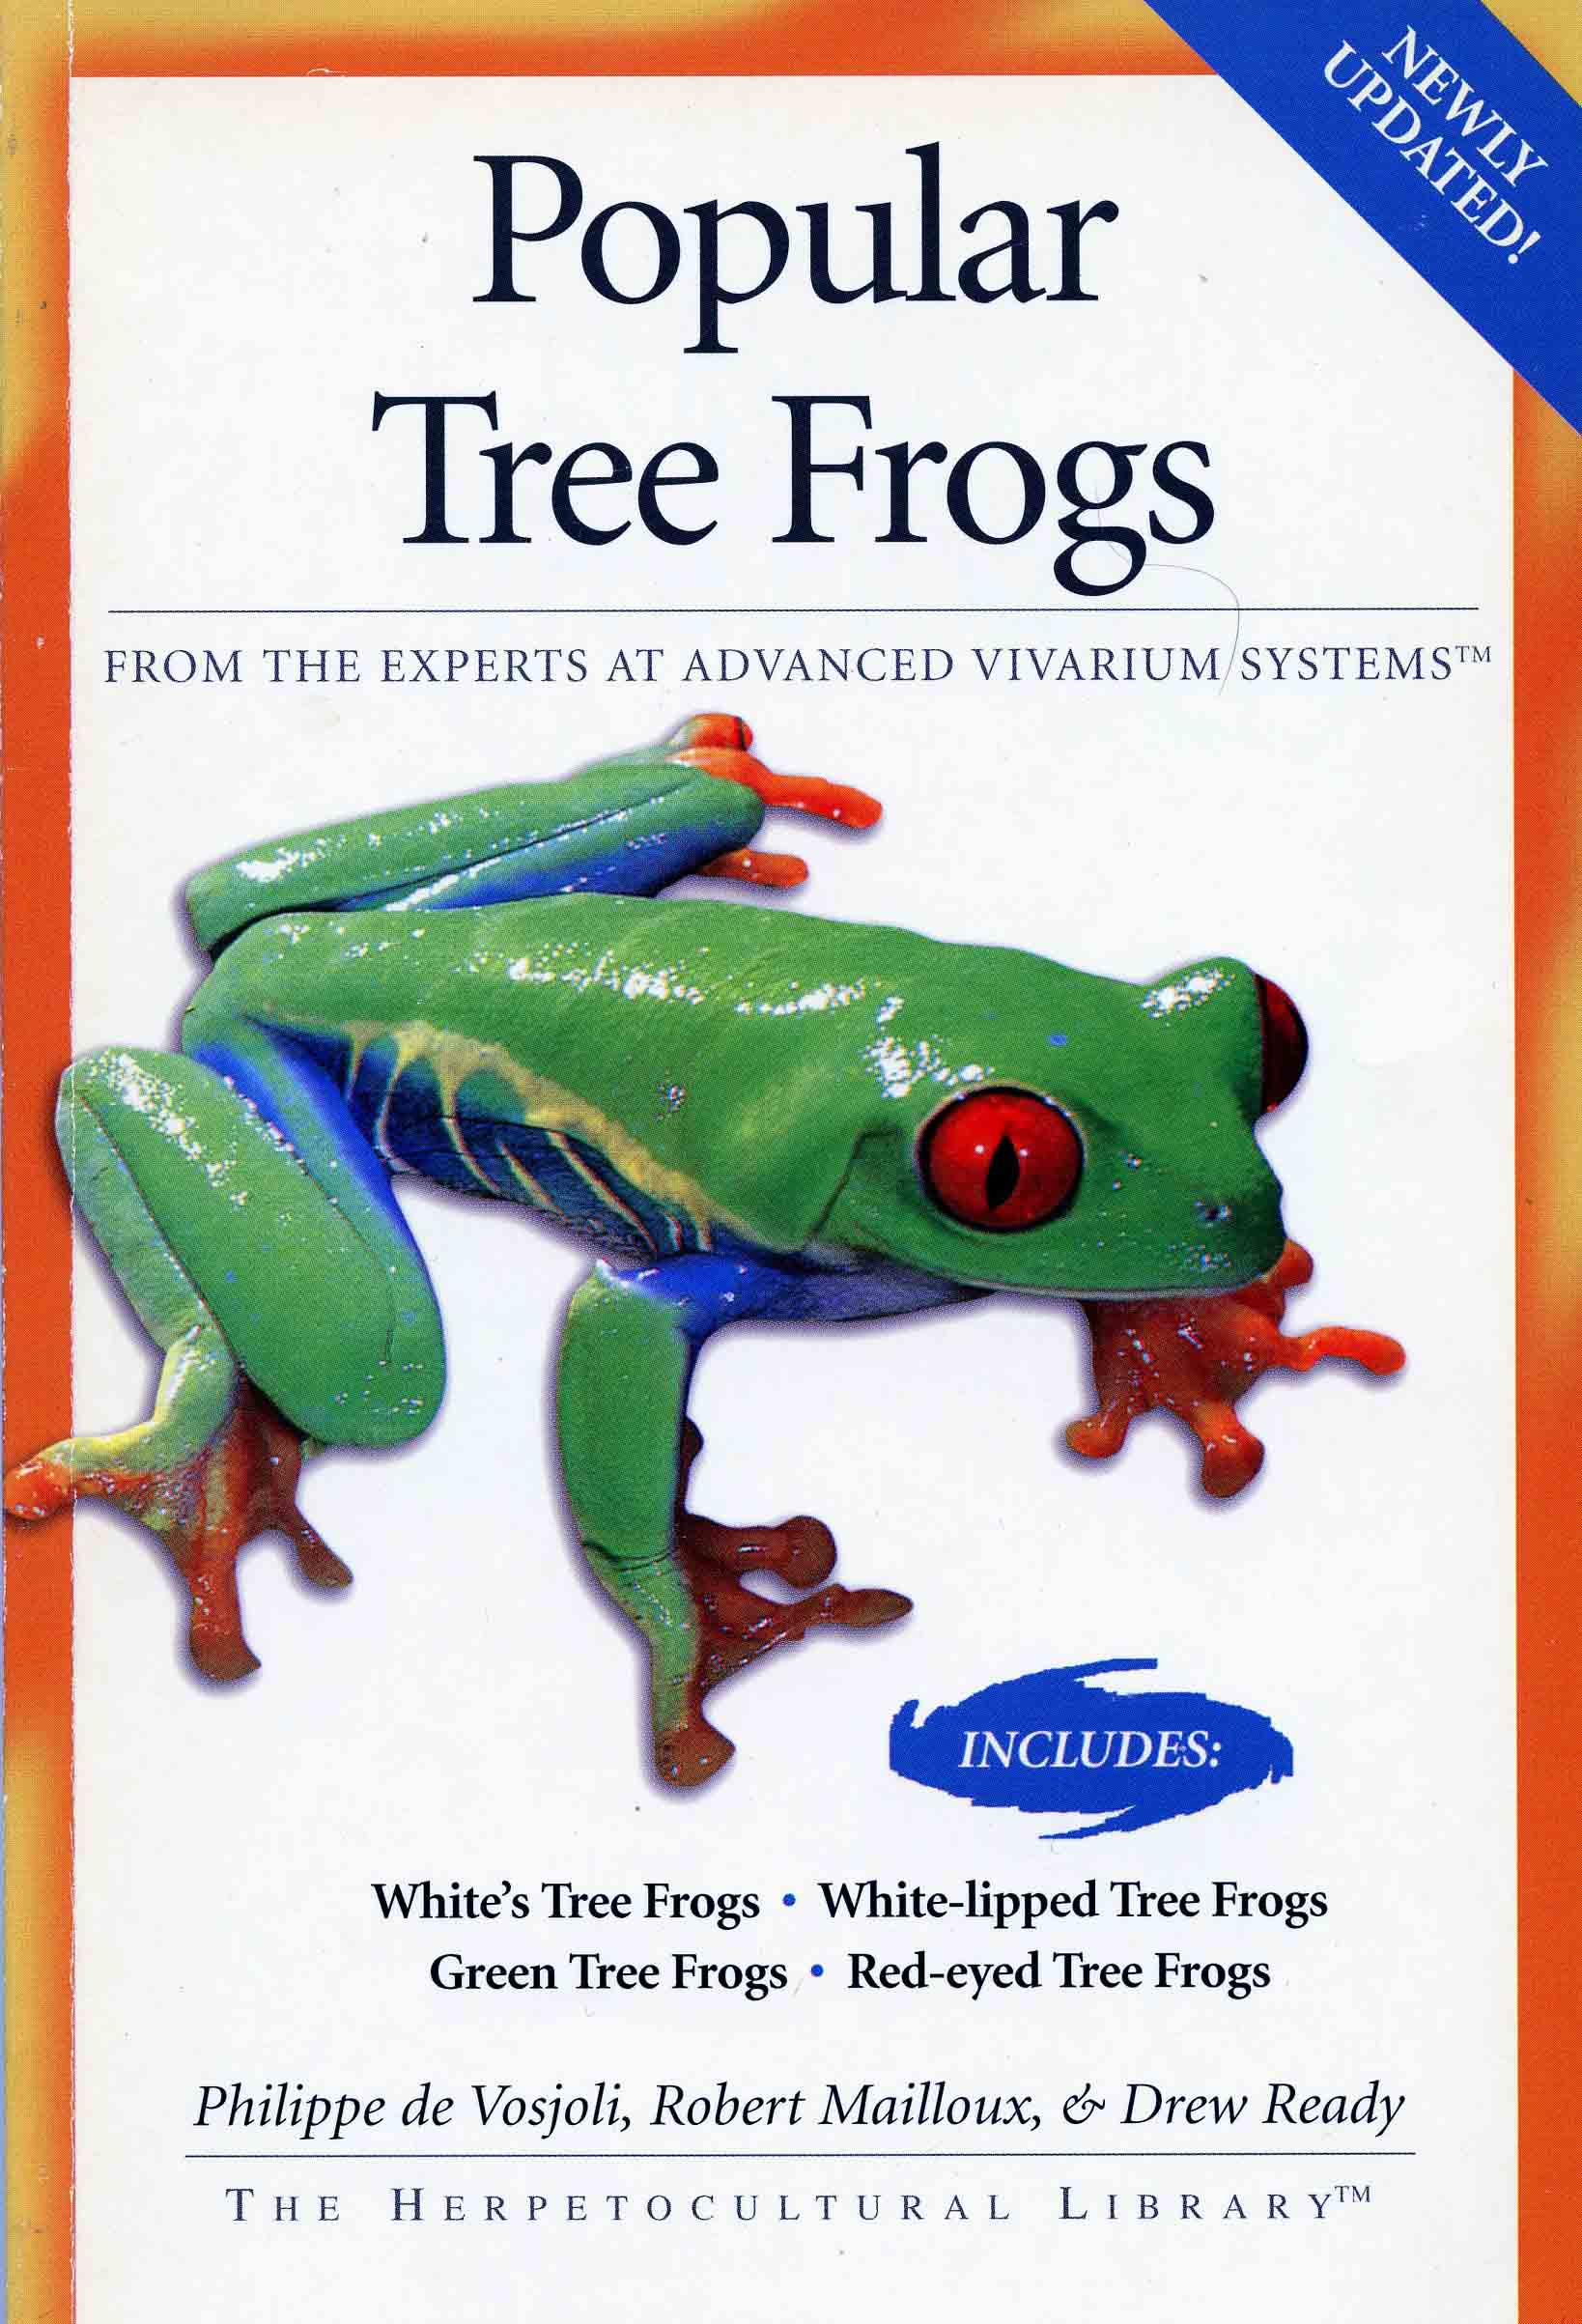 Image for Popular Tree Frogs: Includes White's Tree Frogs, Green Tree Frogs, White-lipped Tree Frogs, Red-eyed Tree Frogs,